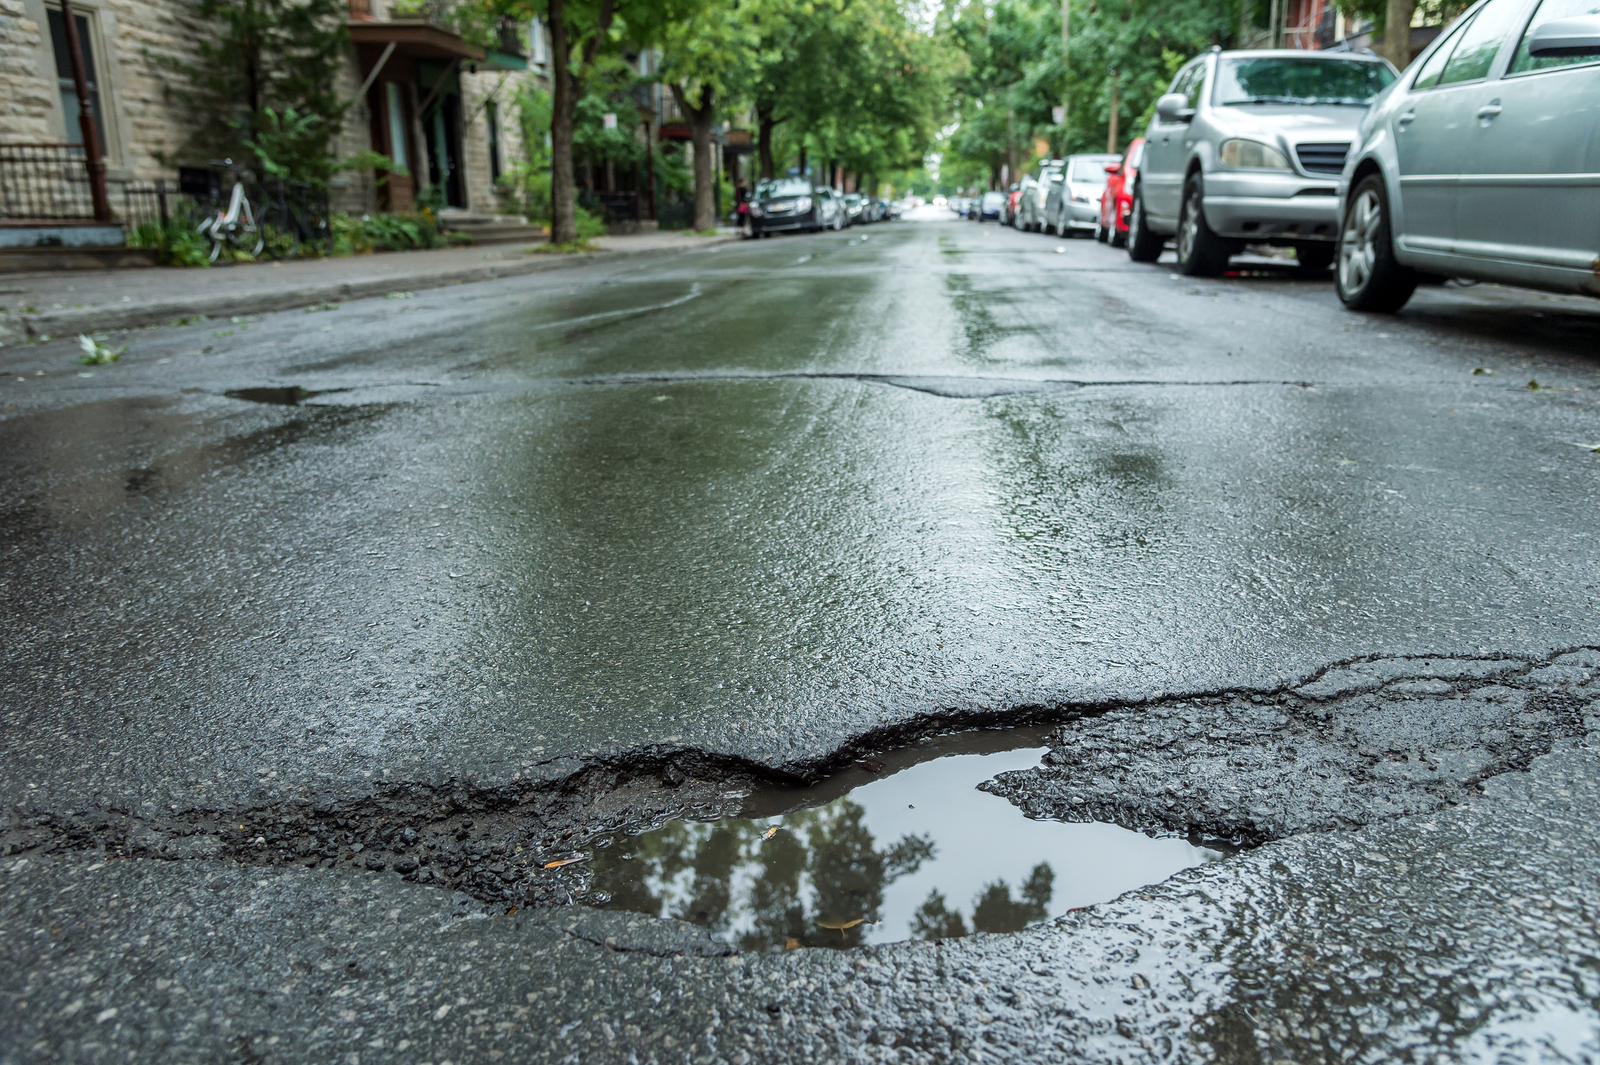 Pothole repair is top priority for van drivers